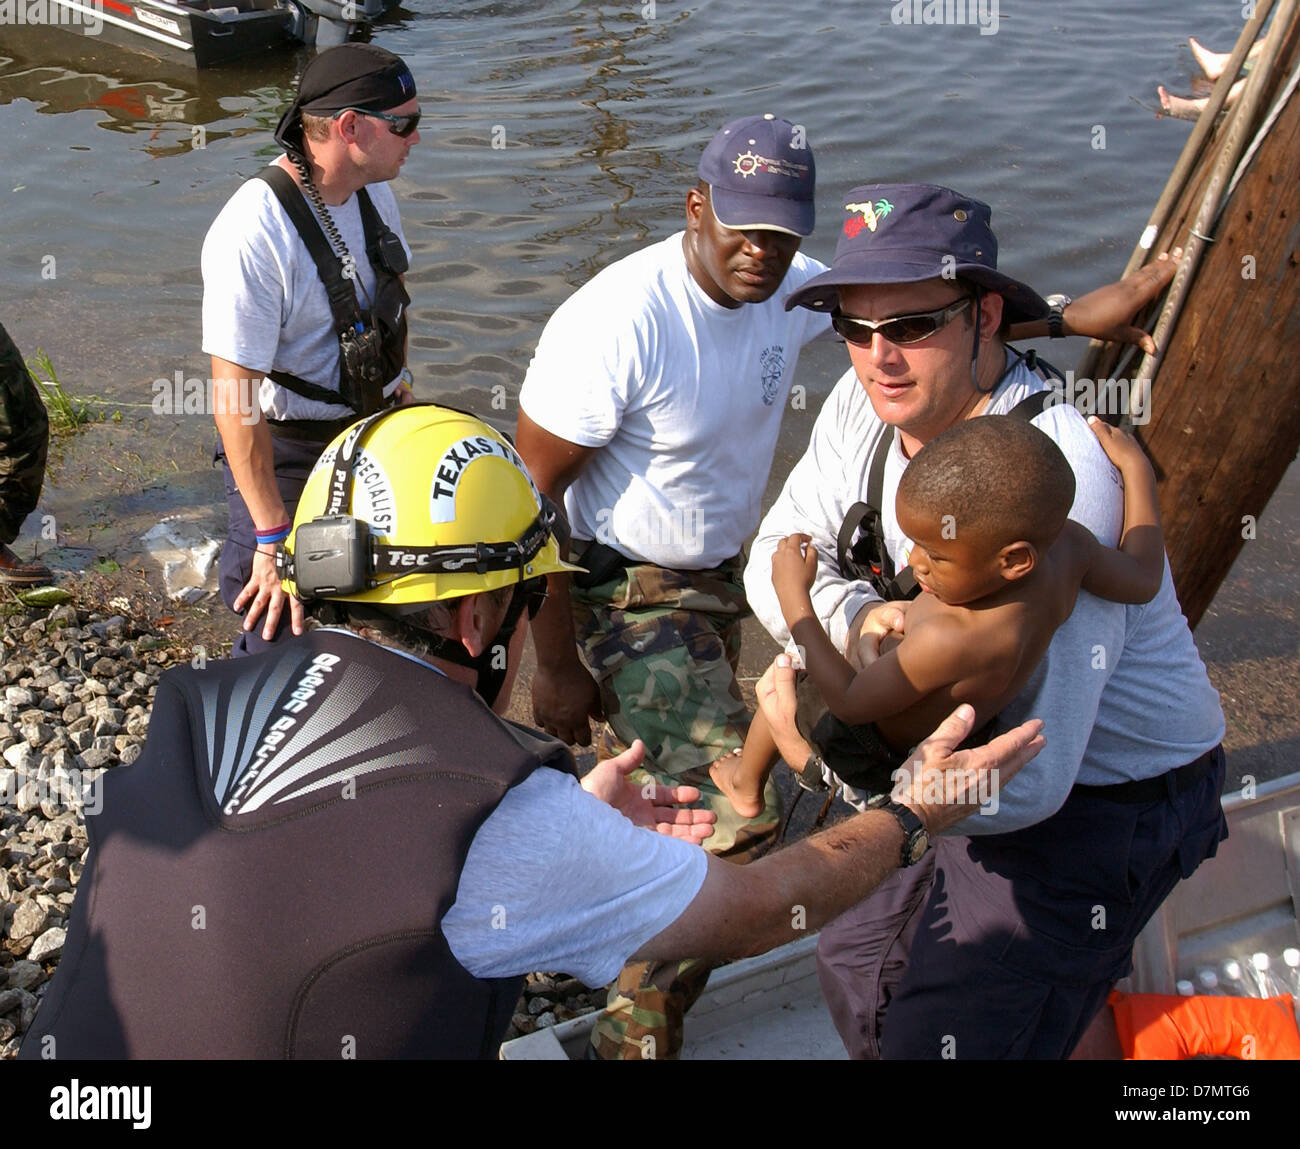 Survivors rescued by urban search and rescue on an airboat in the ...